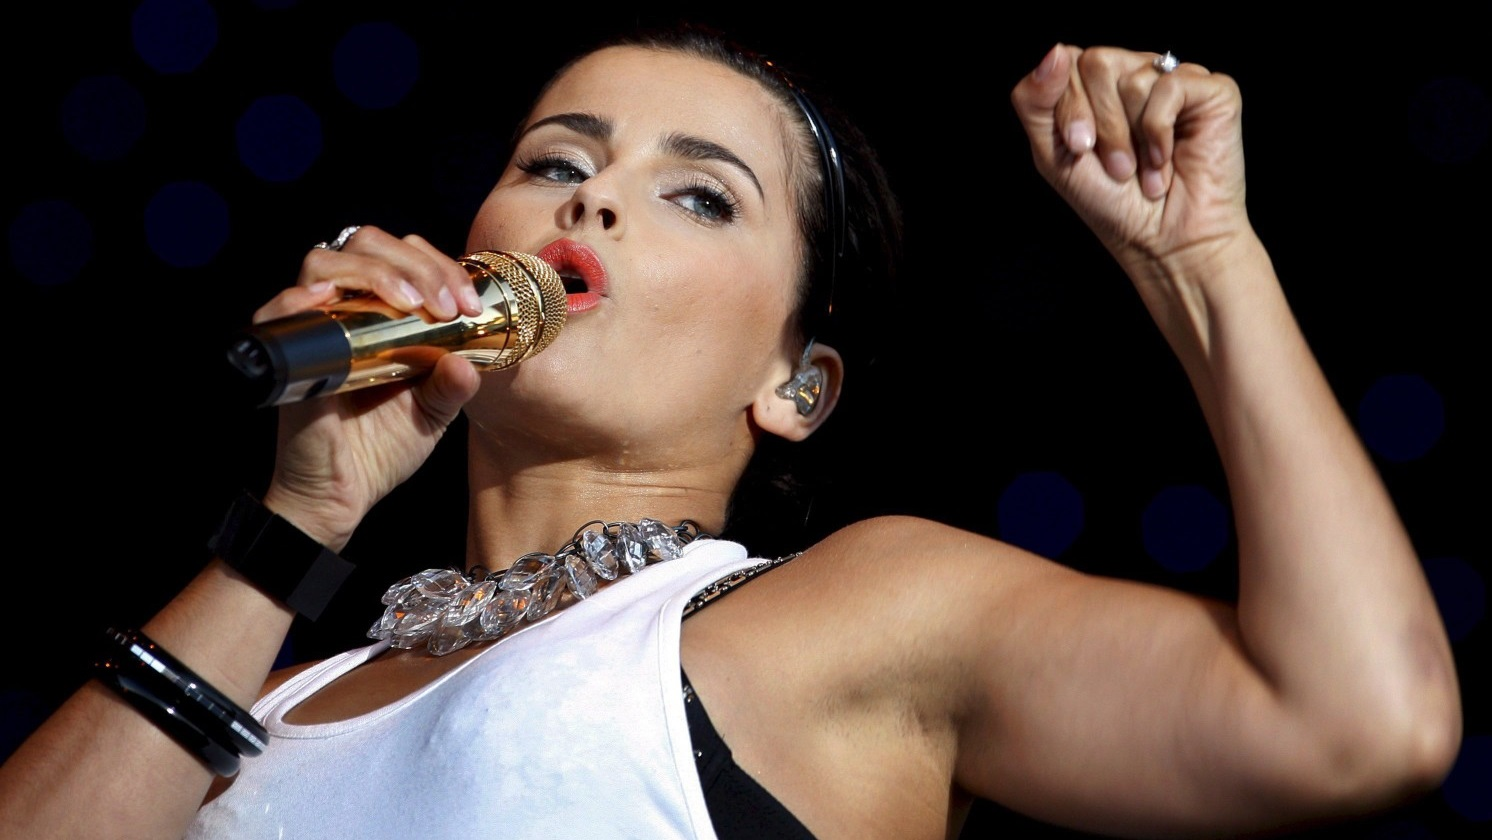 Nelly Furtado – Nude and Naked pics